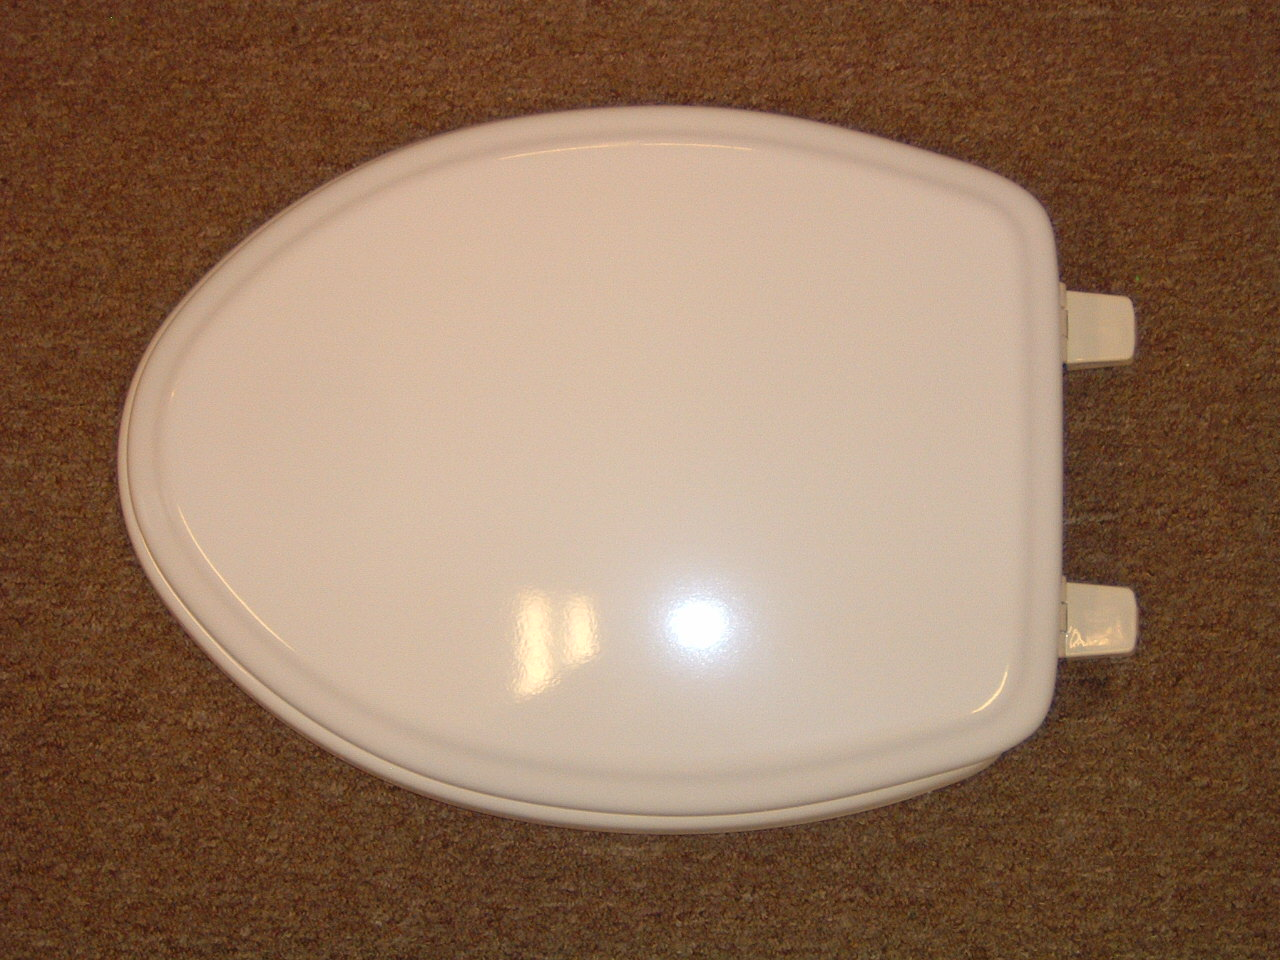 American Standard Elongated Town Square Toilet Seat Call